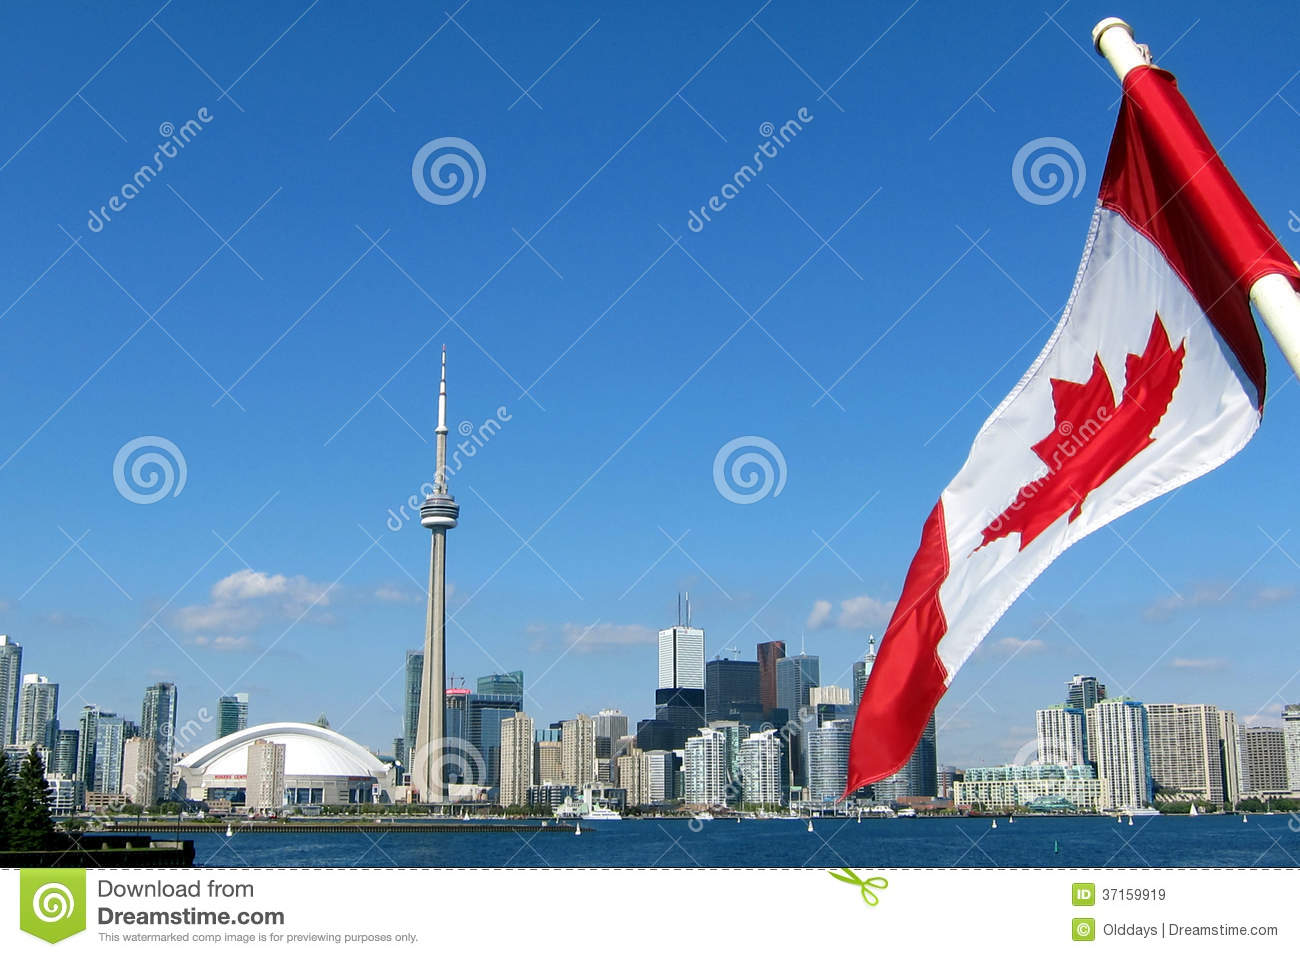 CN Tower In Toronto Royalty Free Stock Images - Image: 37159919